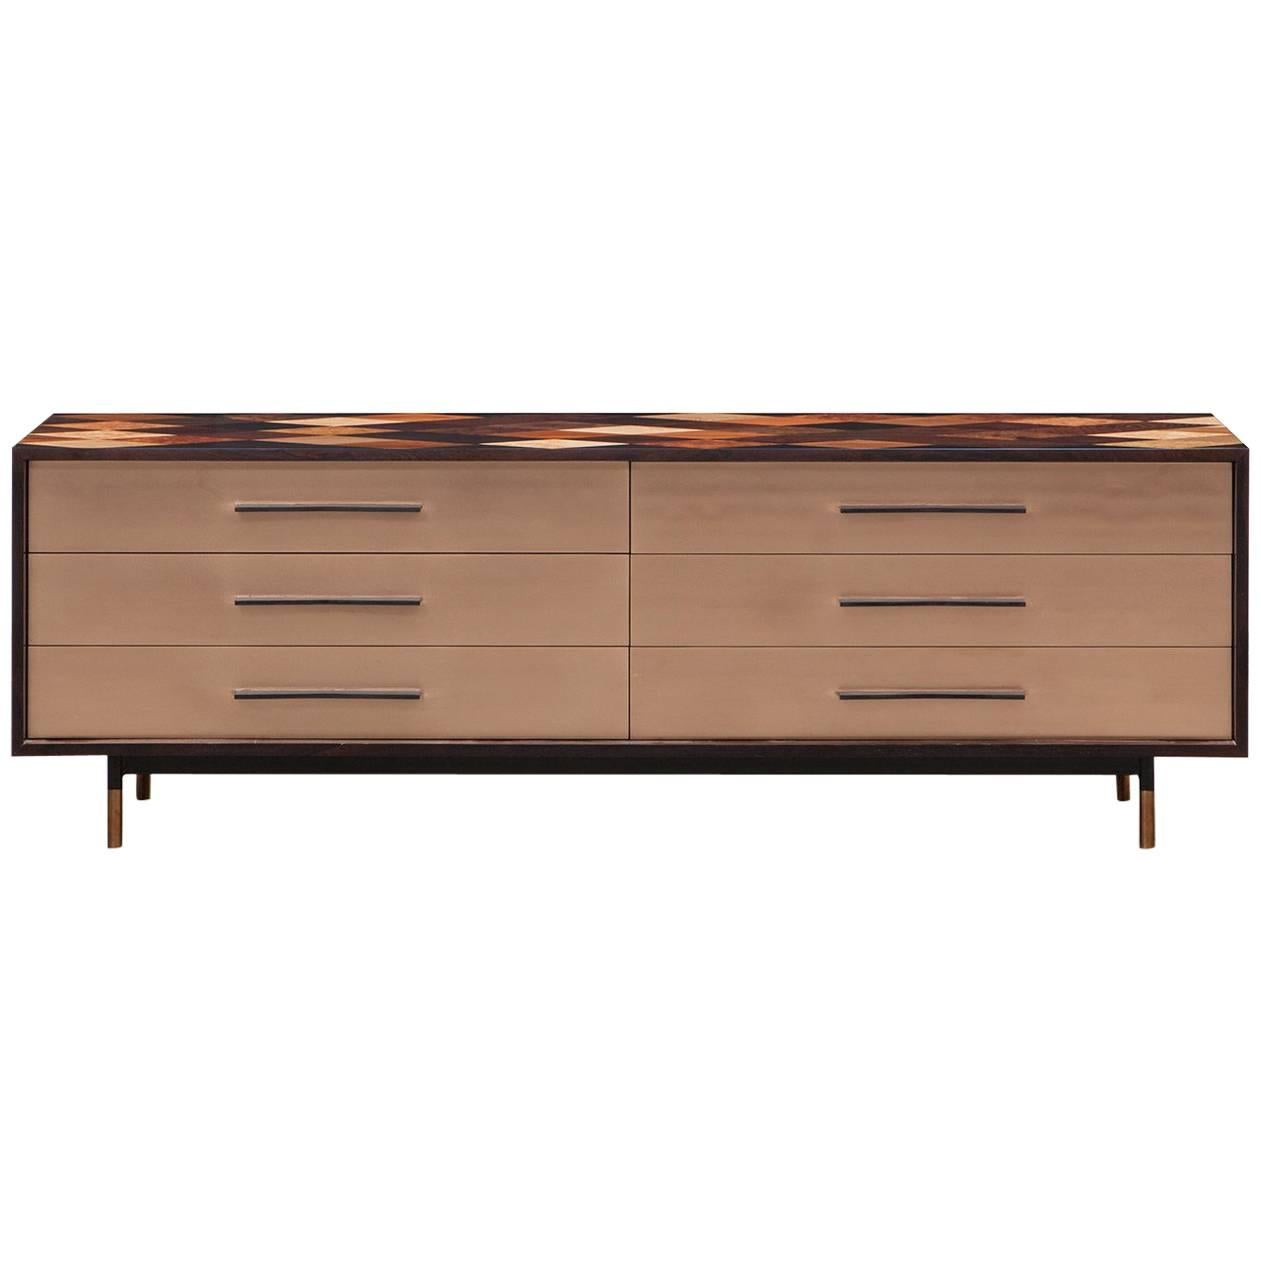 Contemporary Brown Wooden Sideboard by Johannes Hock 'e'